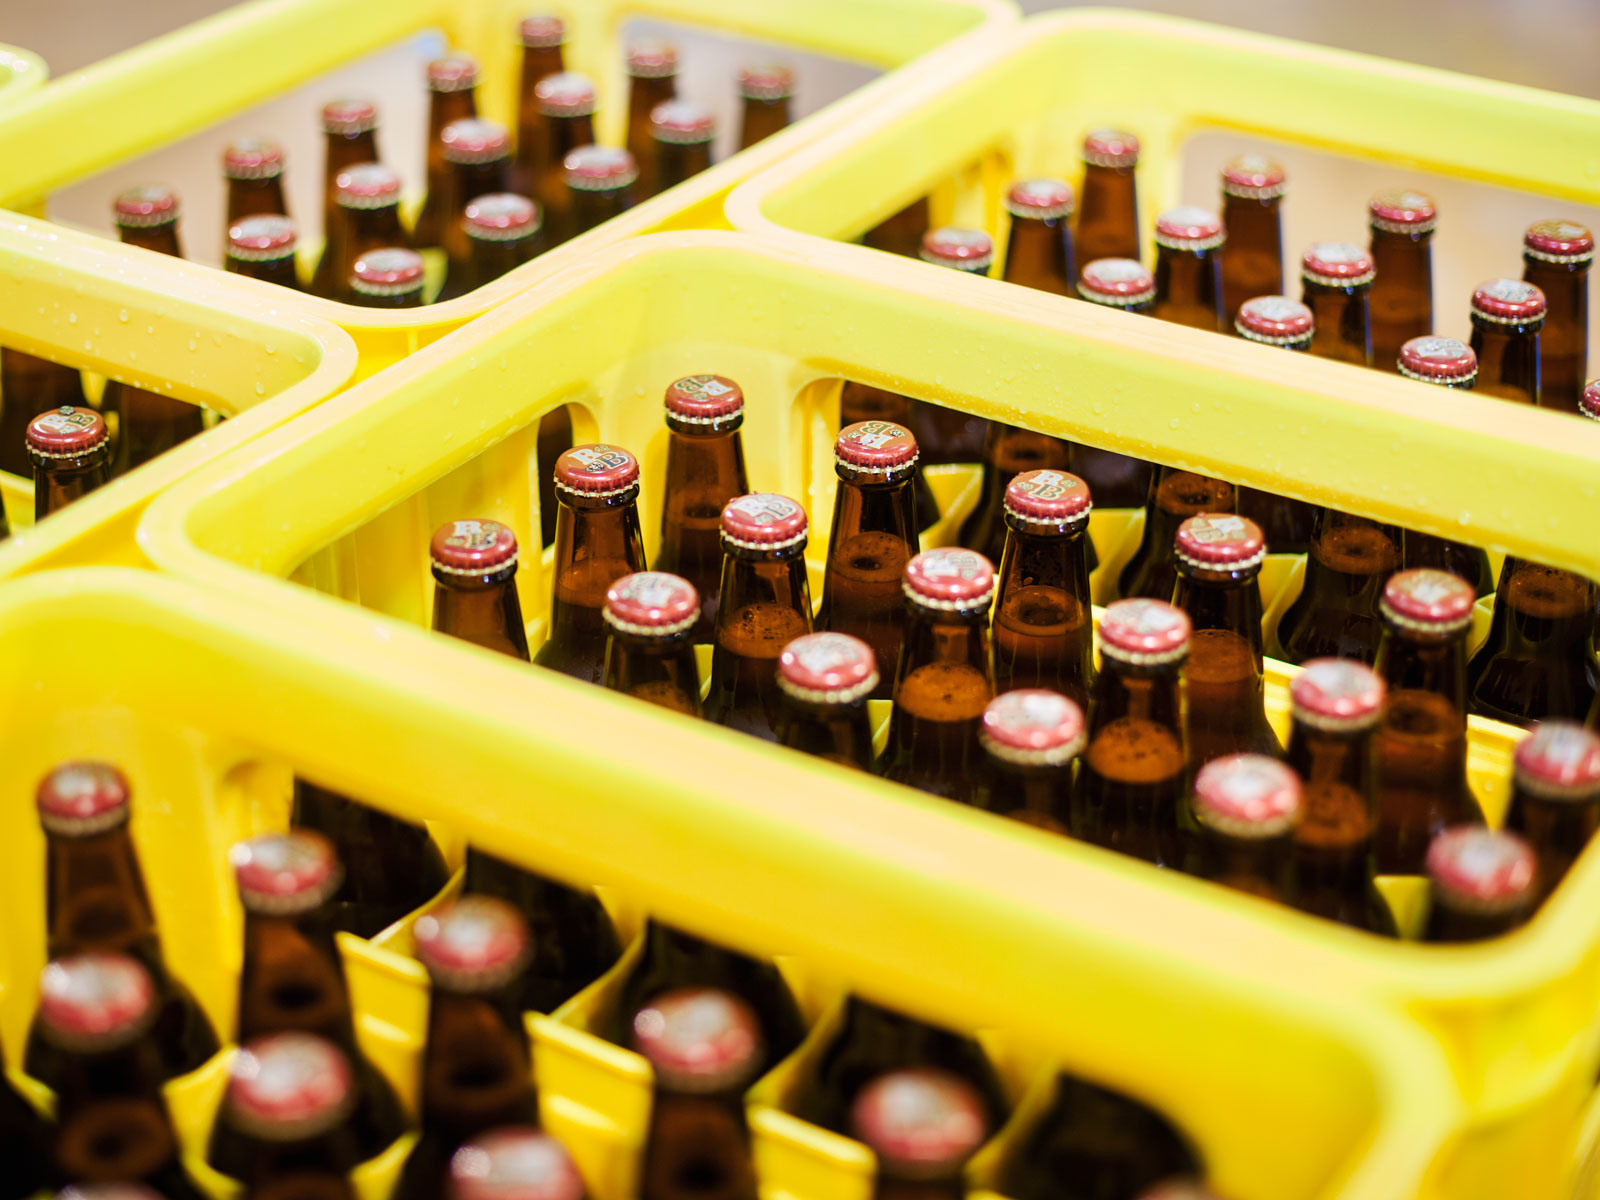 'High End' Beers in 18-Packs May Cost Less, But Could Hurt Independent Brewers